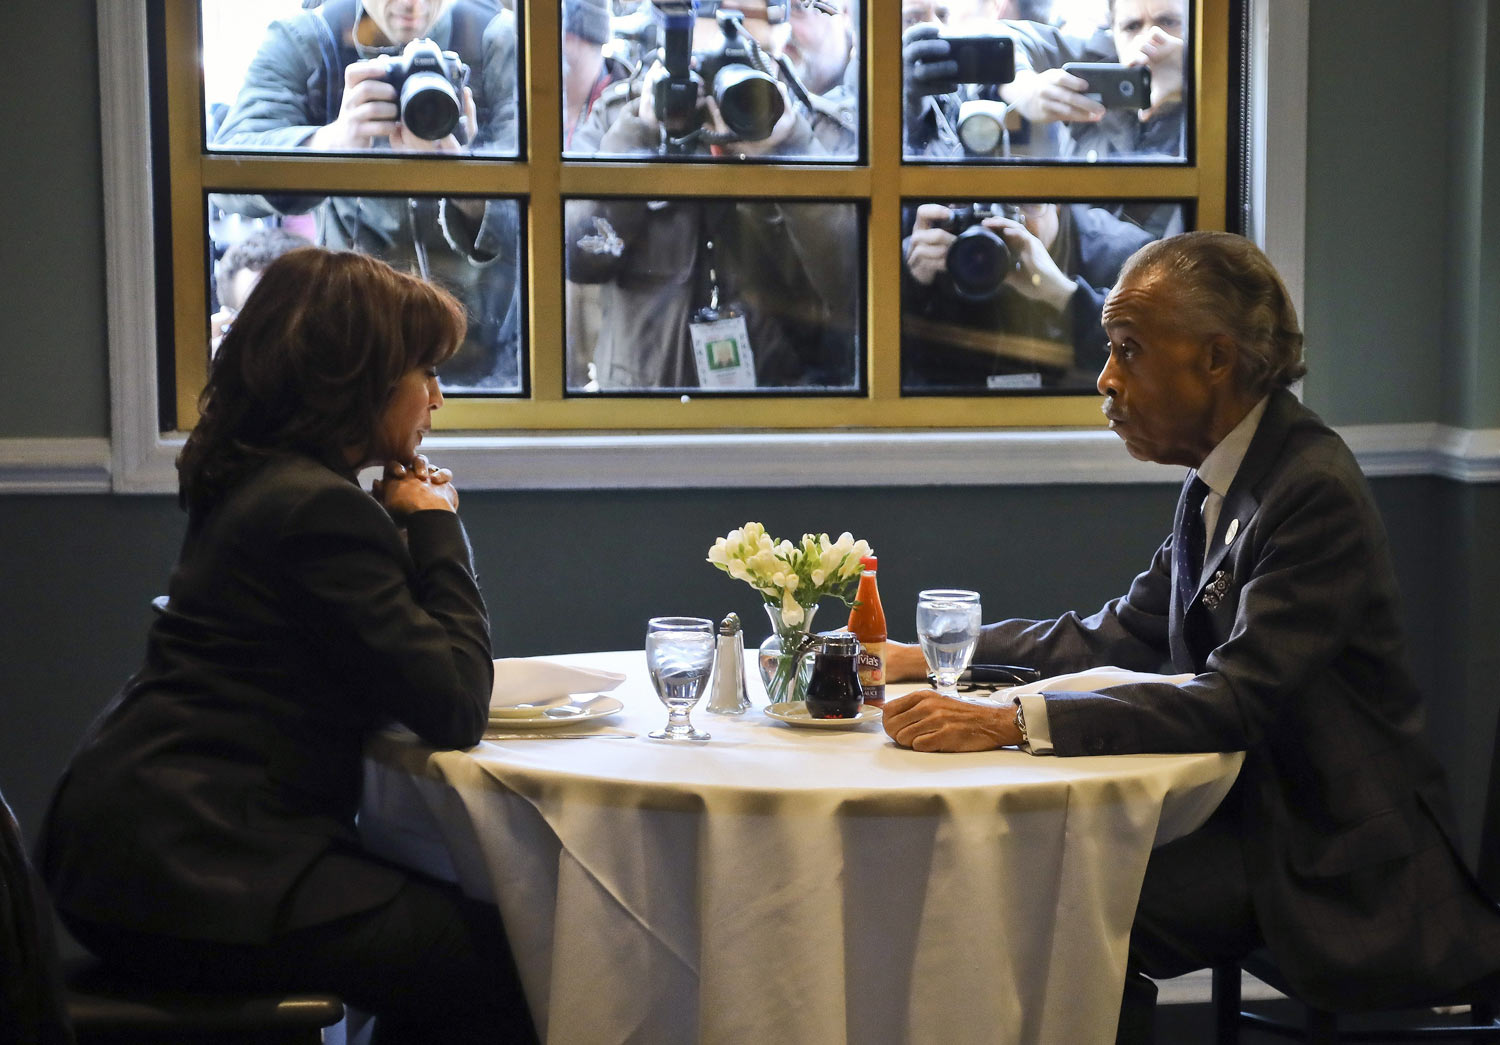 Democratic presidential candidate Sen. Kamala Harris, D-Calif., left, meets with civil rights leader Rev. Al Sharpton, president of the National Action Network, during lunch at Sylvia's Restaurant in the Harlem neighborhood of New York, on Thursday, Feb. 21, 2019. (AP Photo/Bebeto Matthews, Pool)